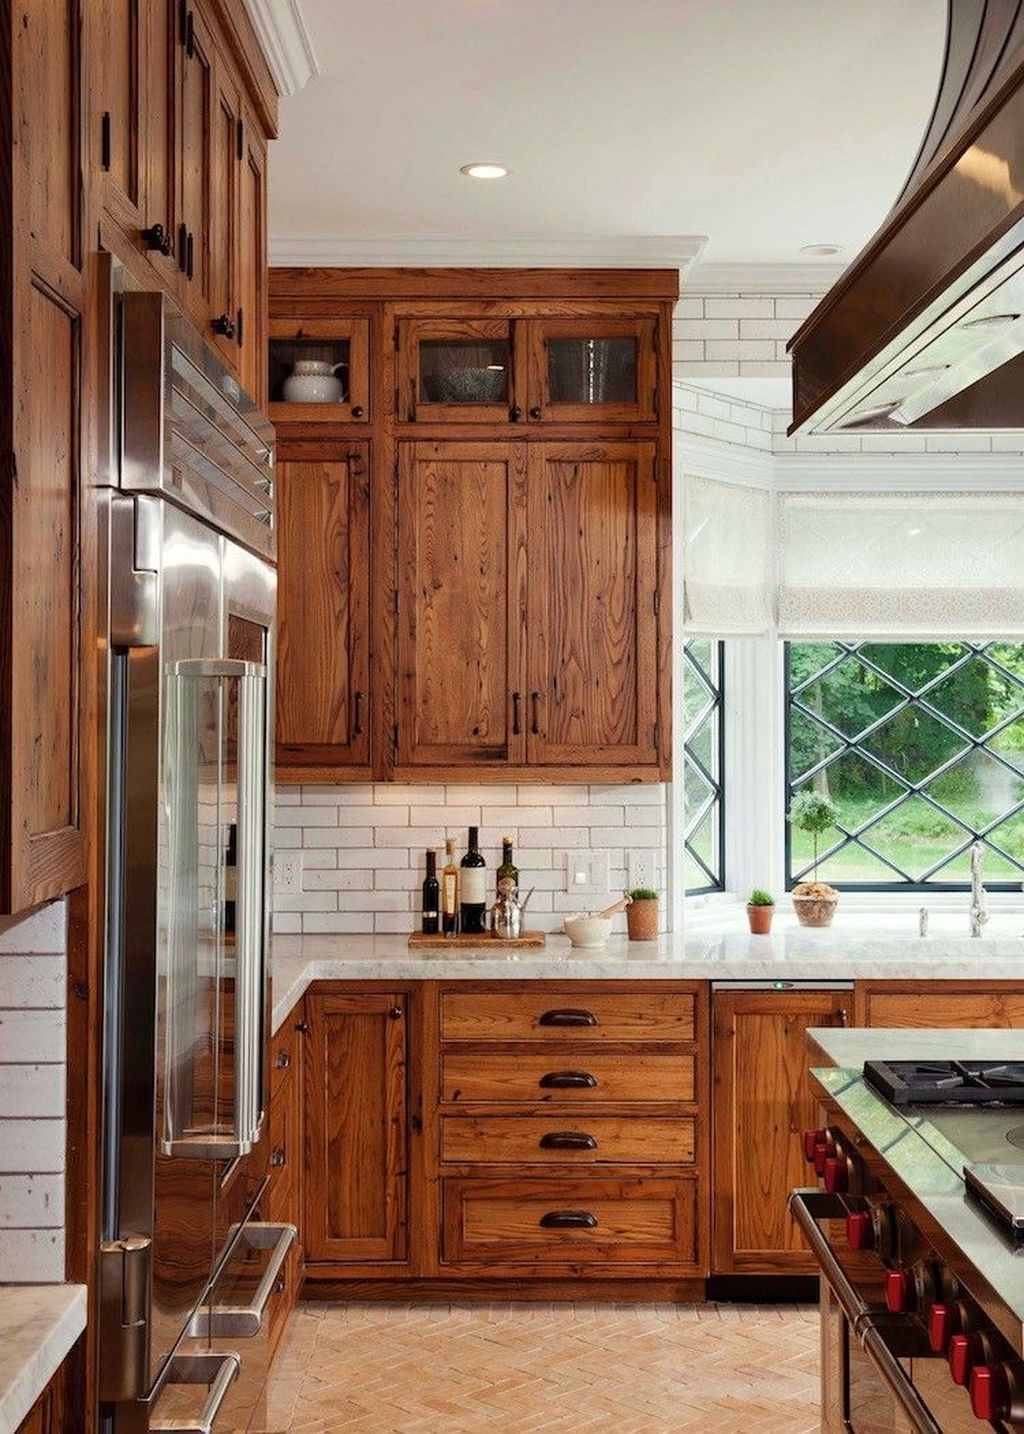 Popular Wooden Cabinets Design Ideas For Your Kitchen Decor 03